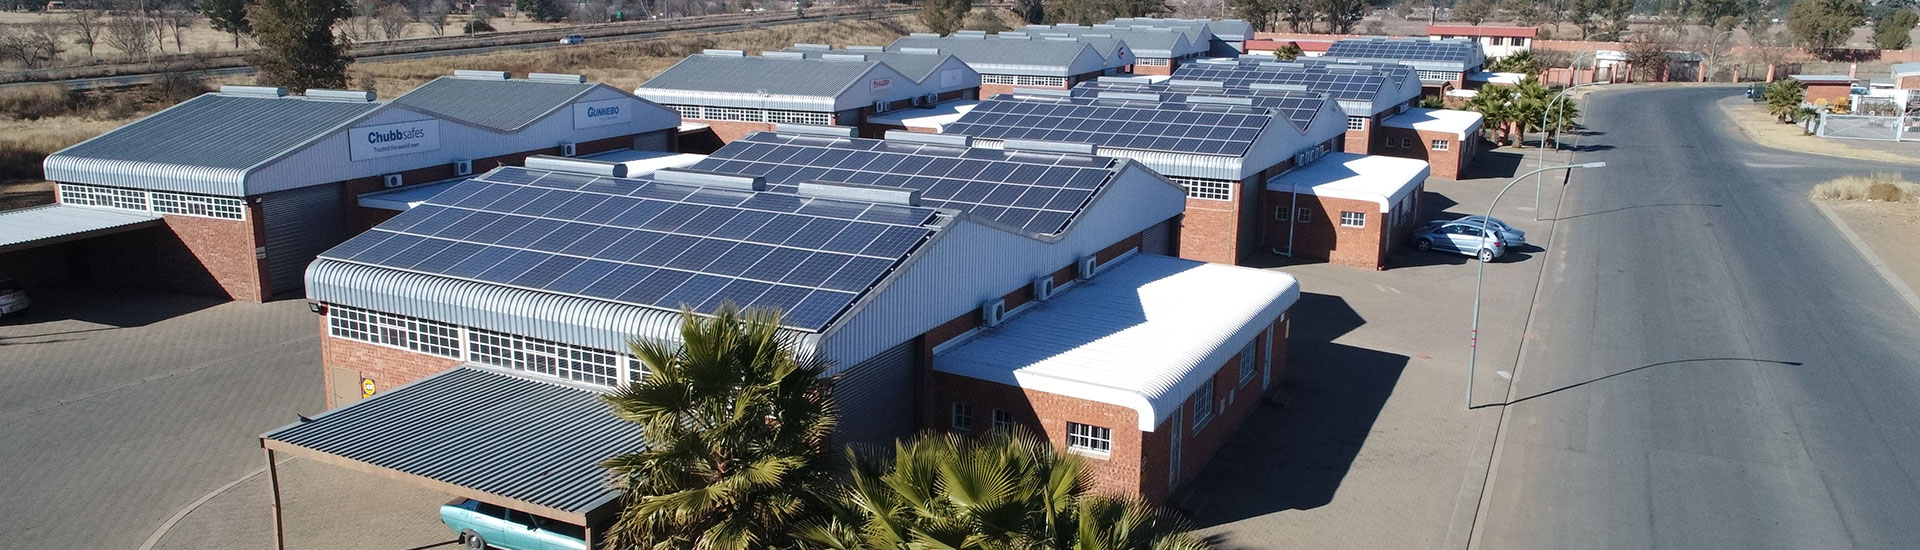 Eco Trades: Solar Power Systems for Warehouse Parks (Project: East End Park, Bloemfontein)